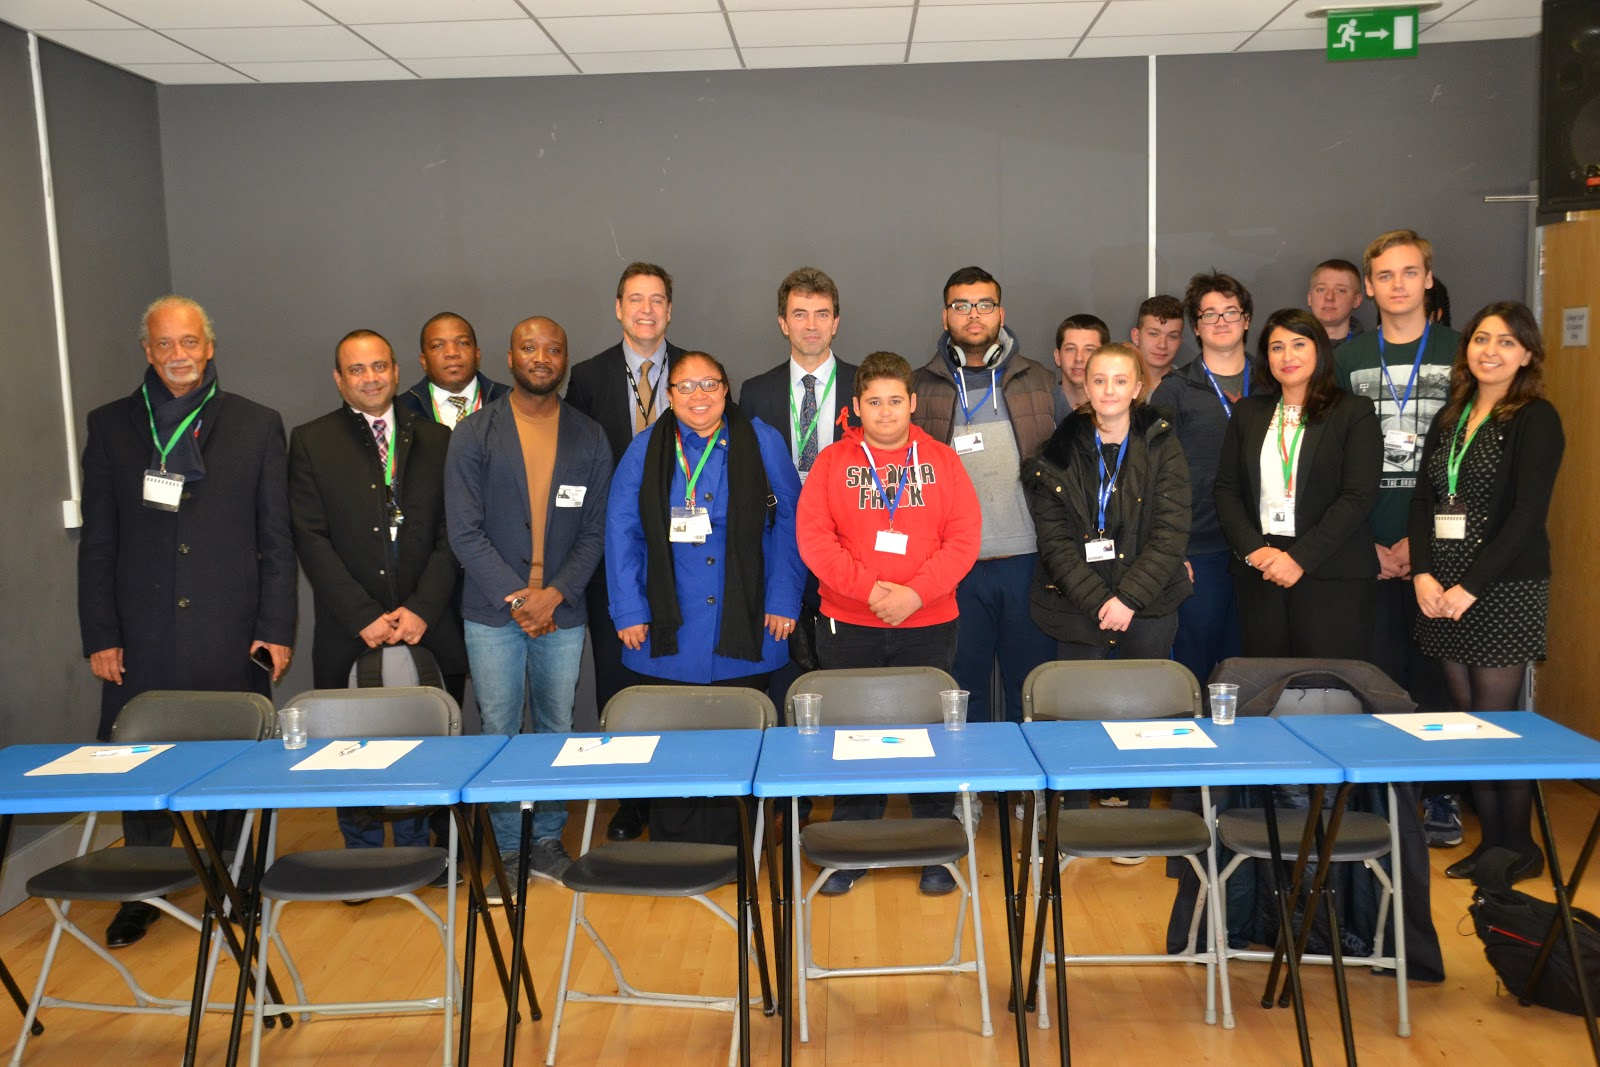 Brake welcomes Commonwealth Parliamentarians to Carshalton